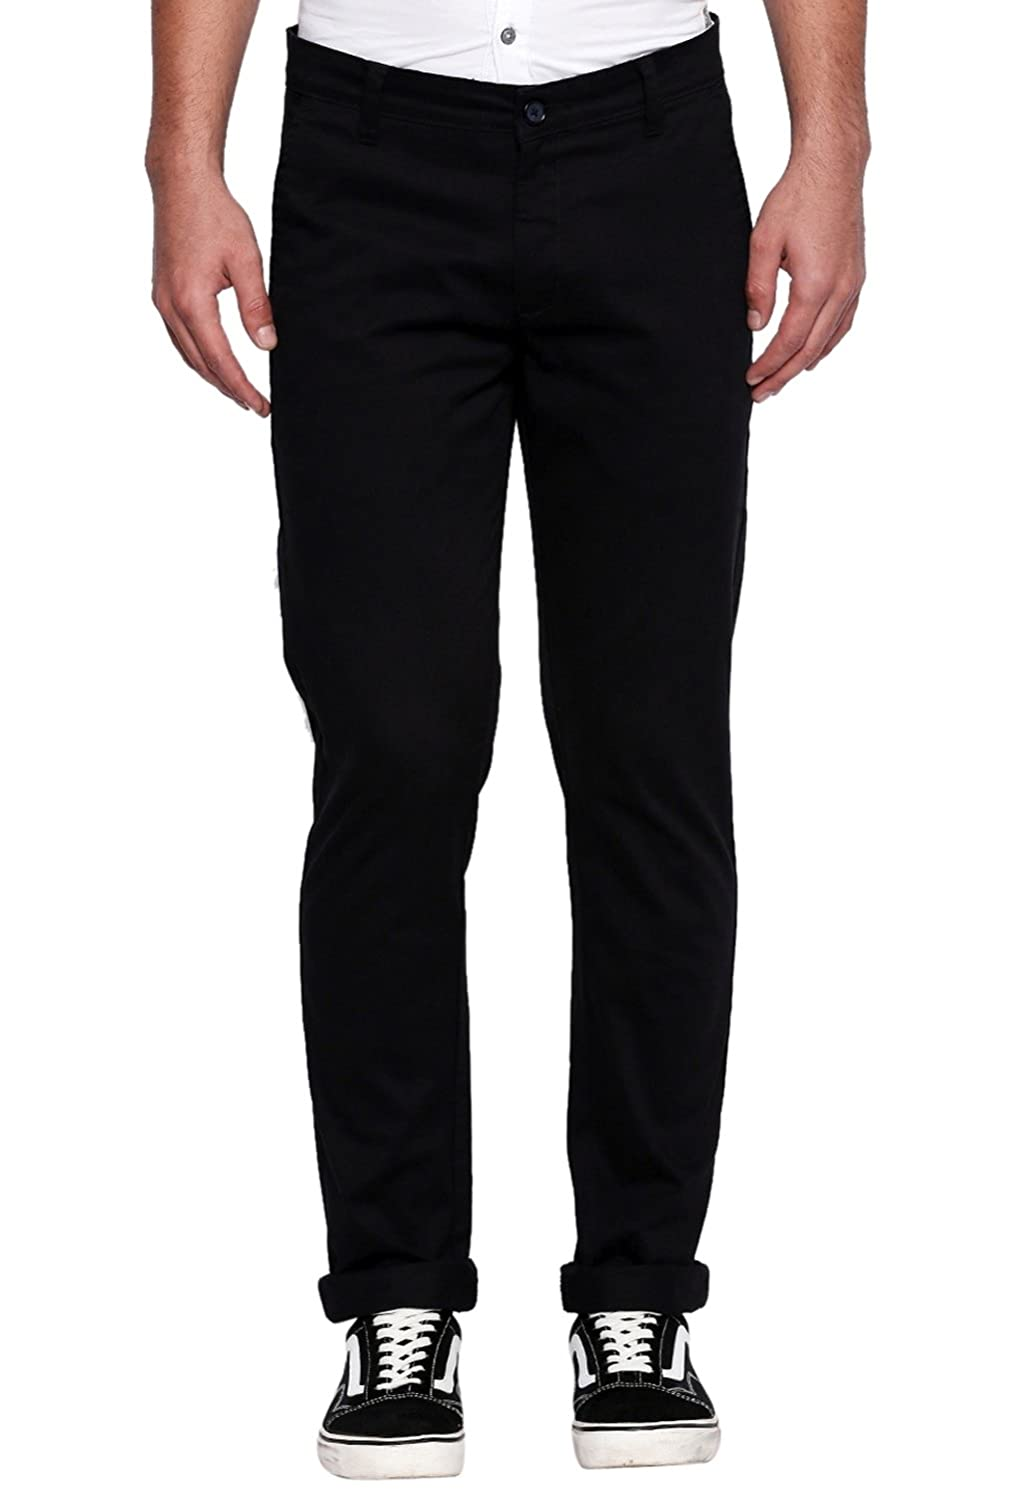 17949bf5af2 Top 10 wholesale Black Trousers And Top - Chinabrands.com